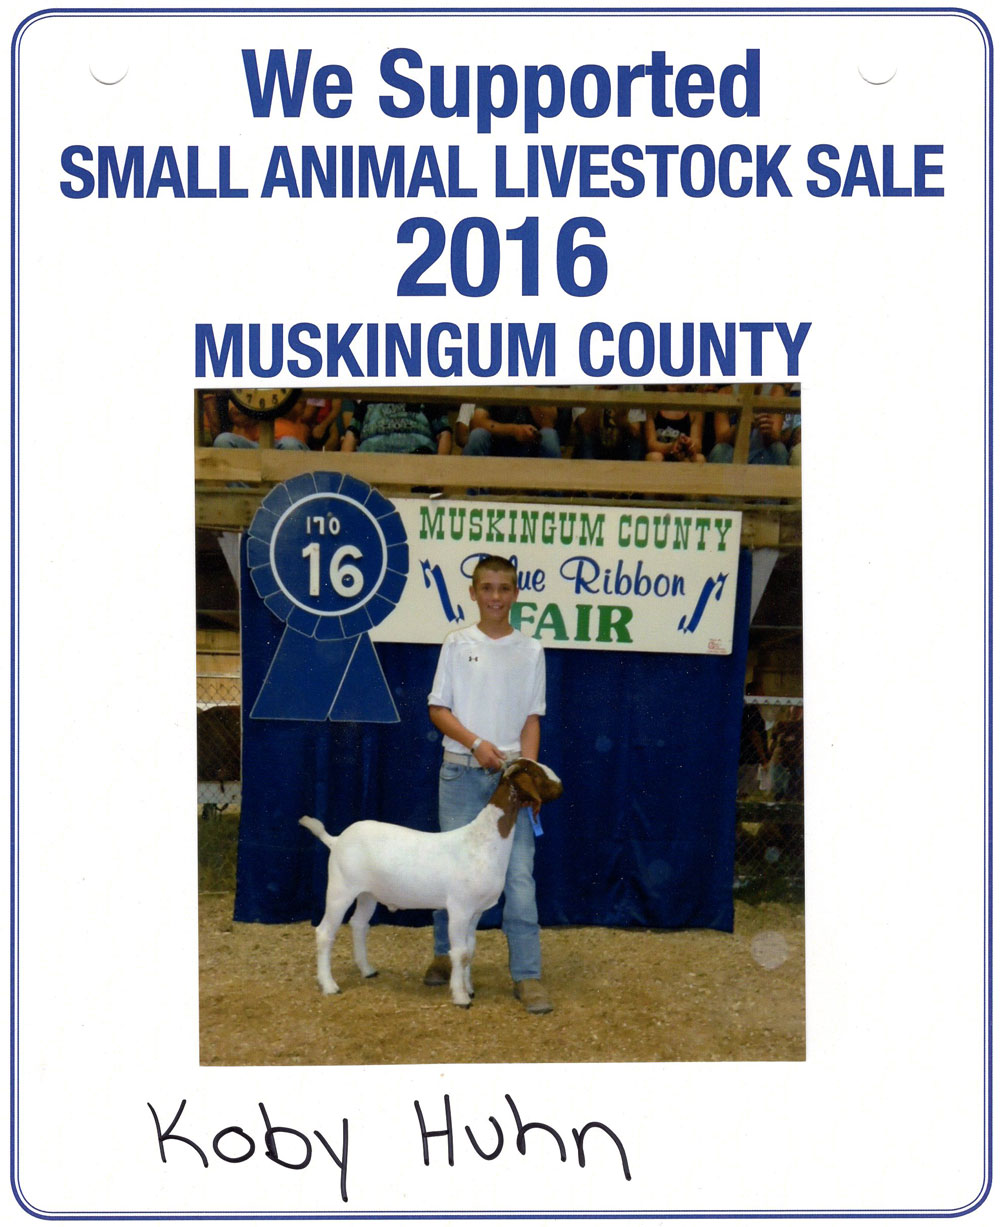 Ohio muskingum county norwich - Zemba Bros Community Support Muskingum County Fair Live Stock Auction 6